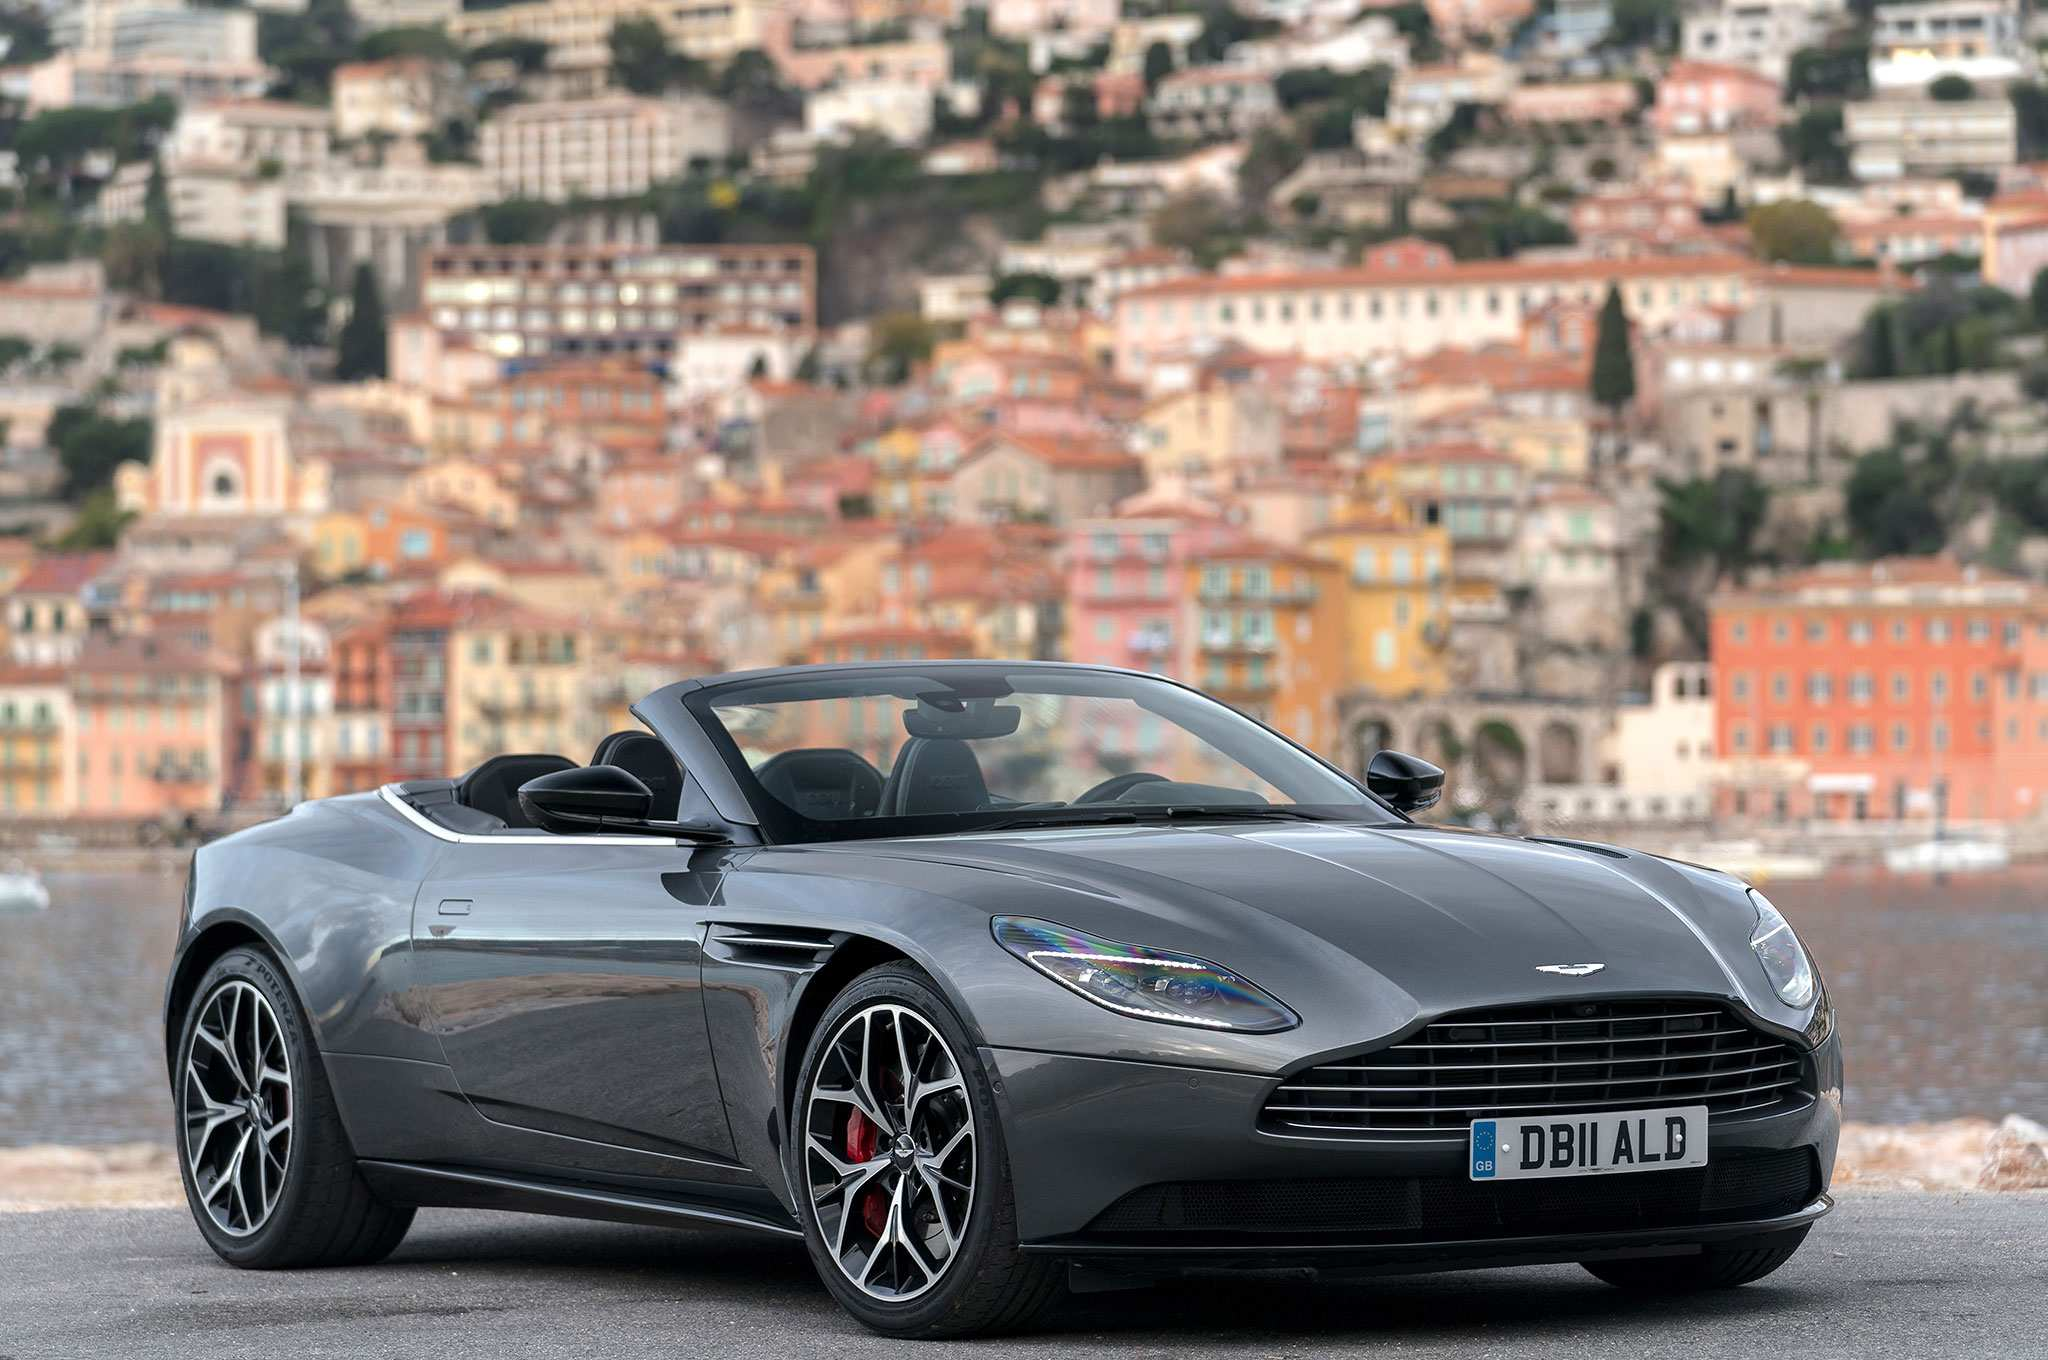 93 Best Review 2019 Aston Martin Db11 Volante Reviews with 2019 Aston Martin Db11 Volante